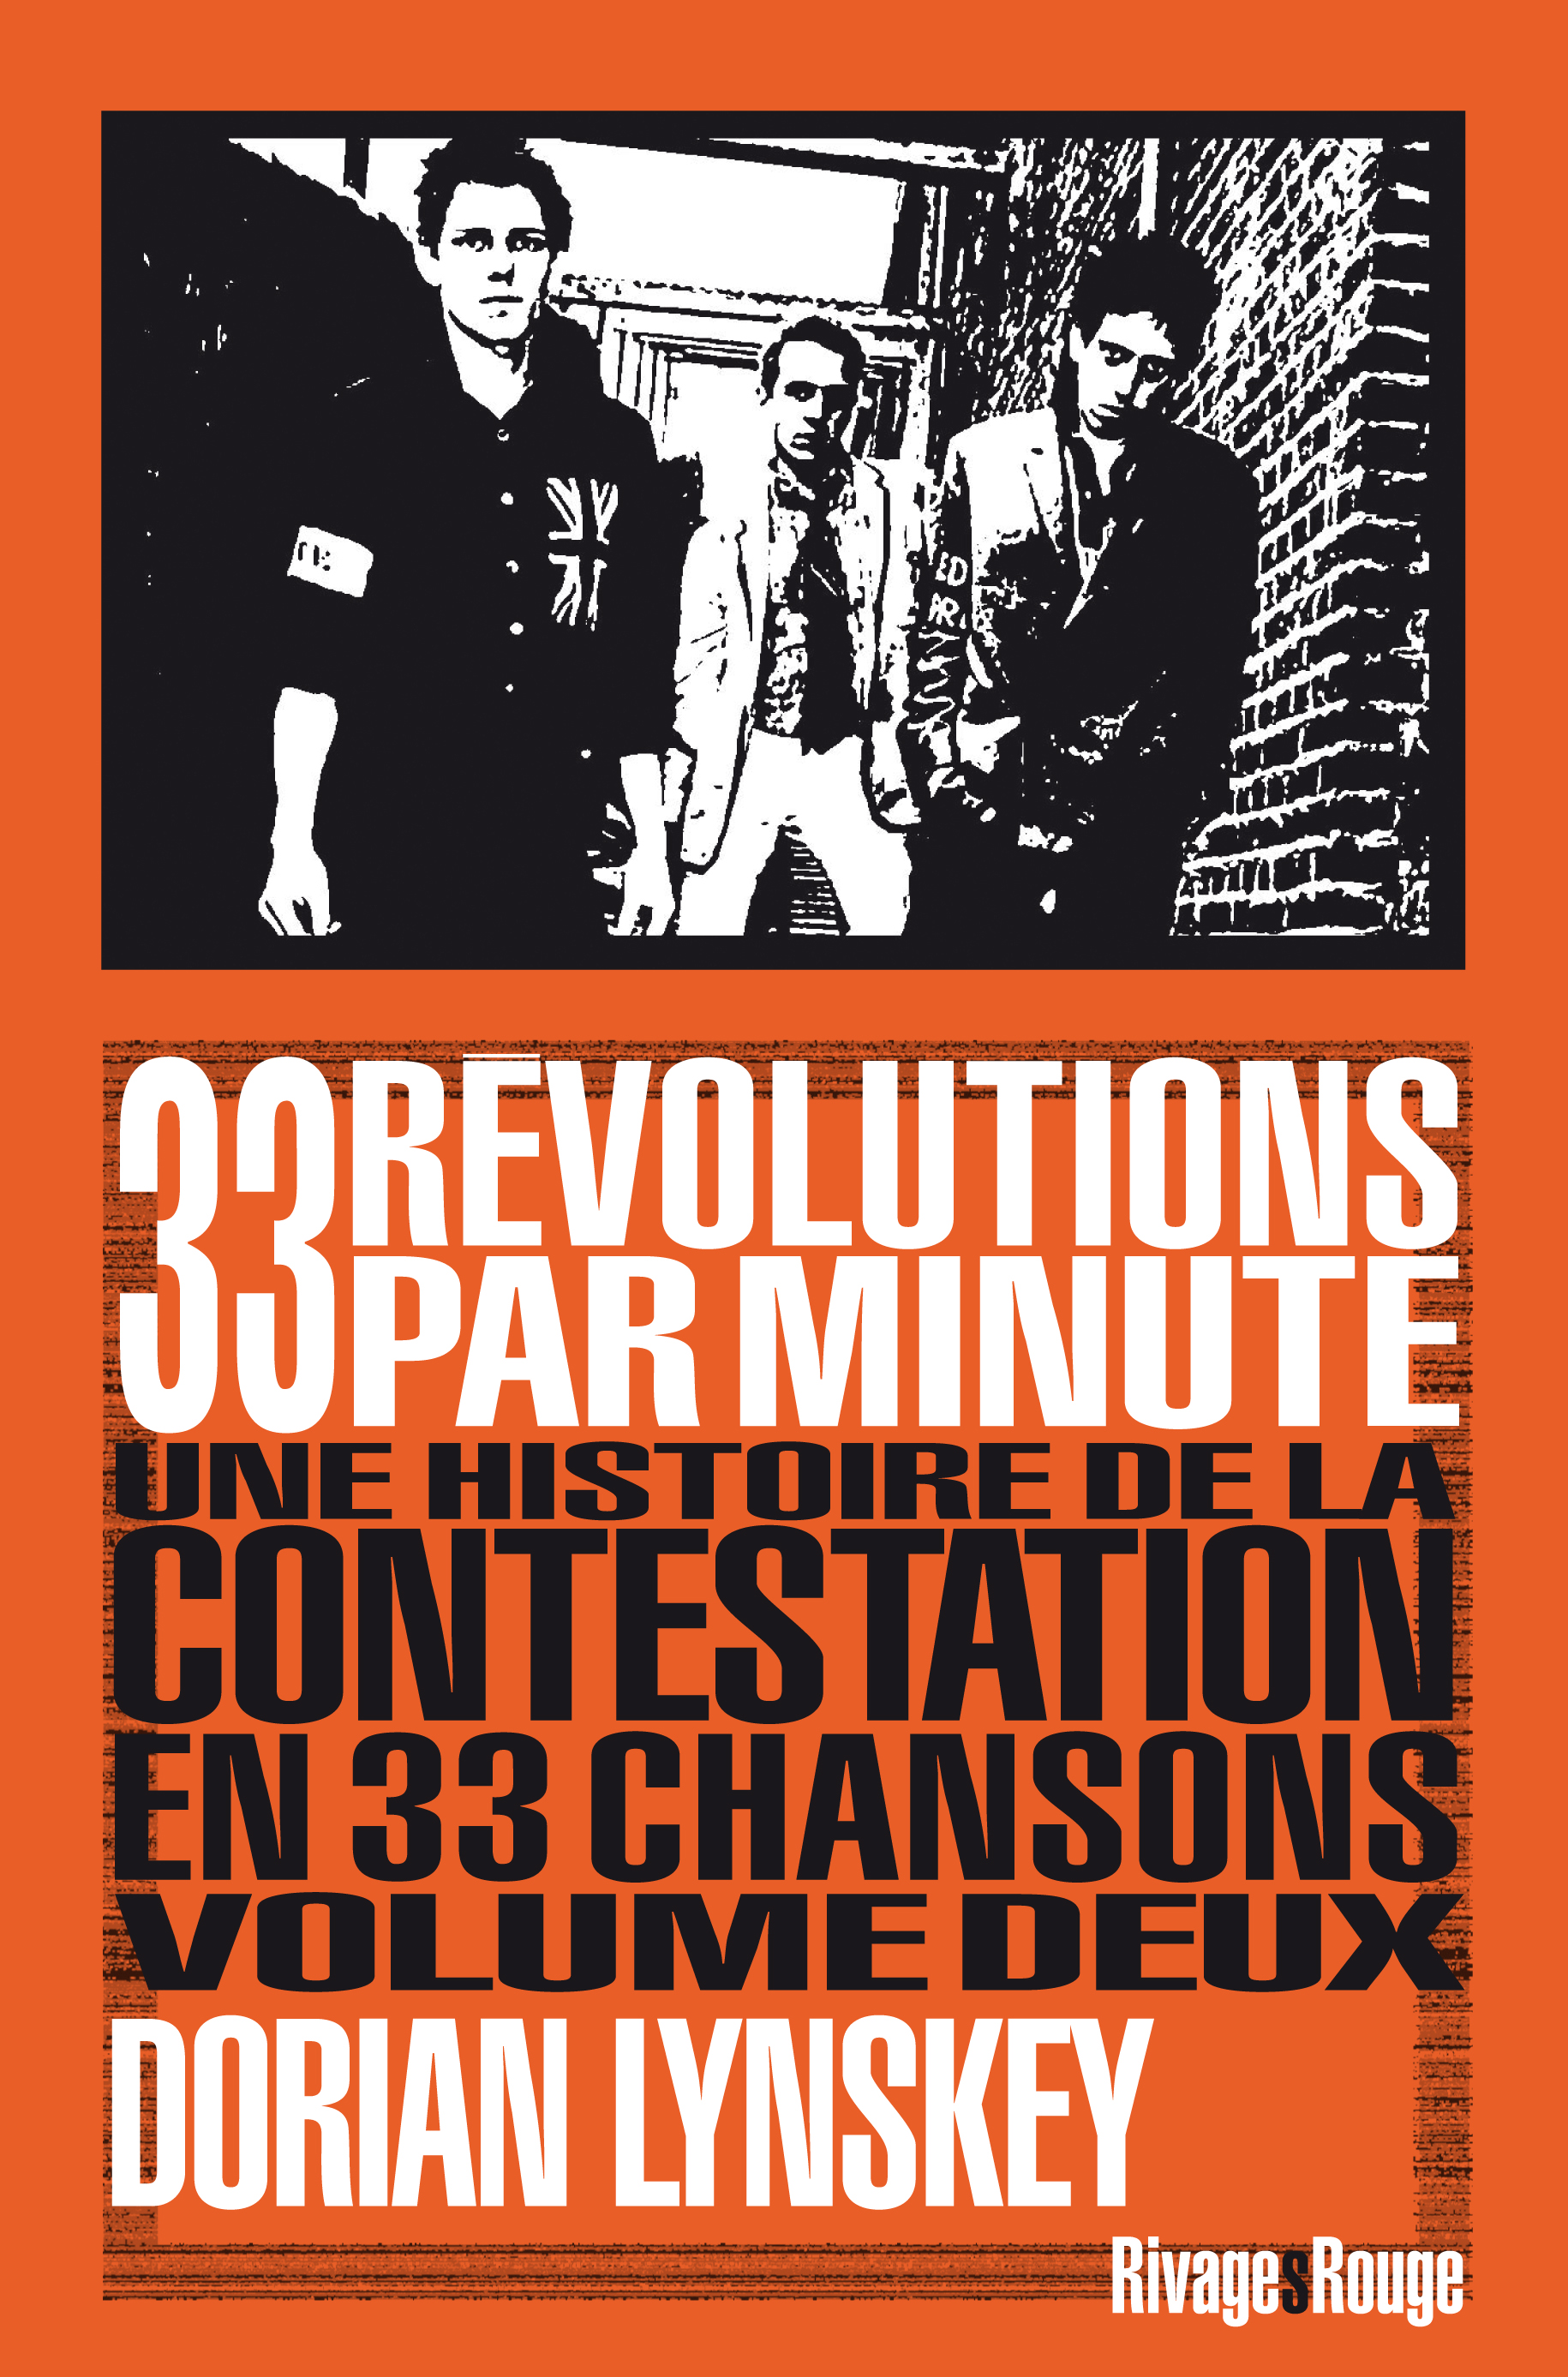 Facing 33 Revolutions Tome 2